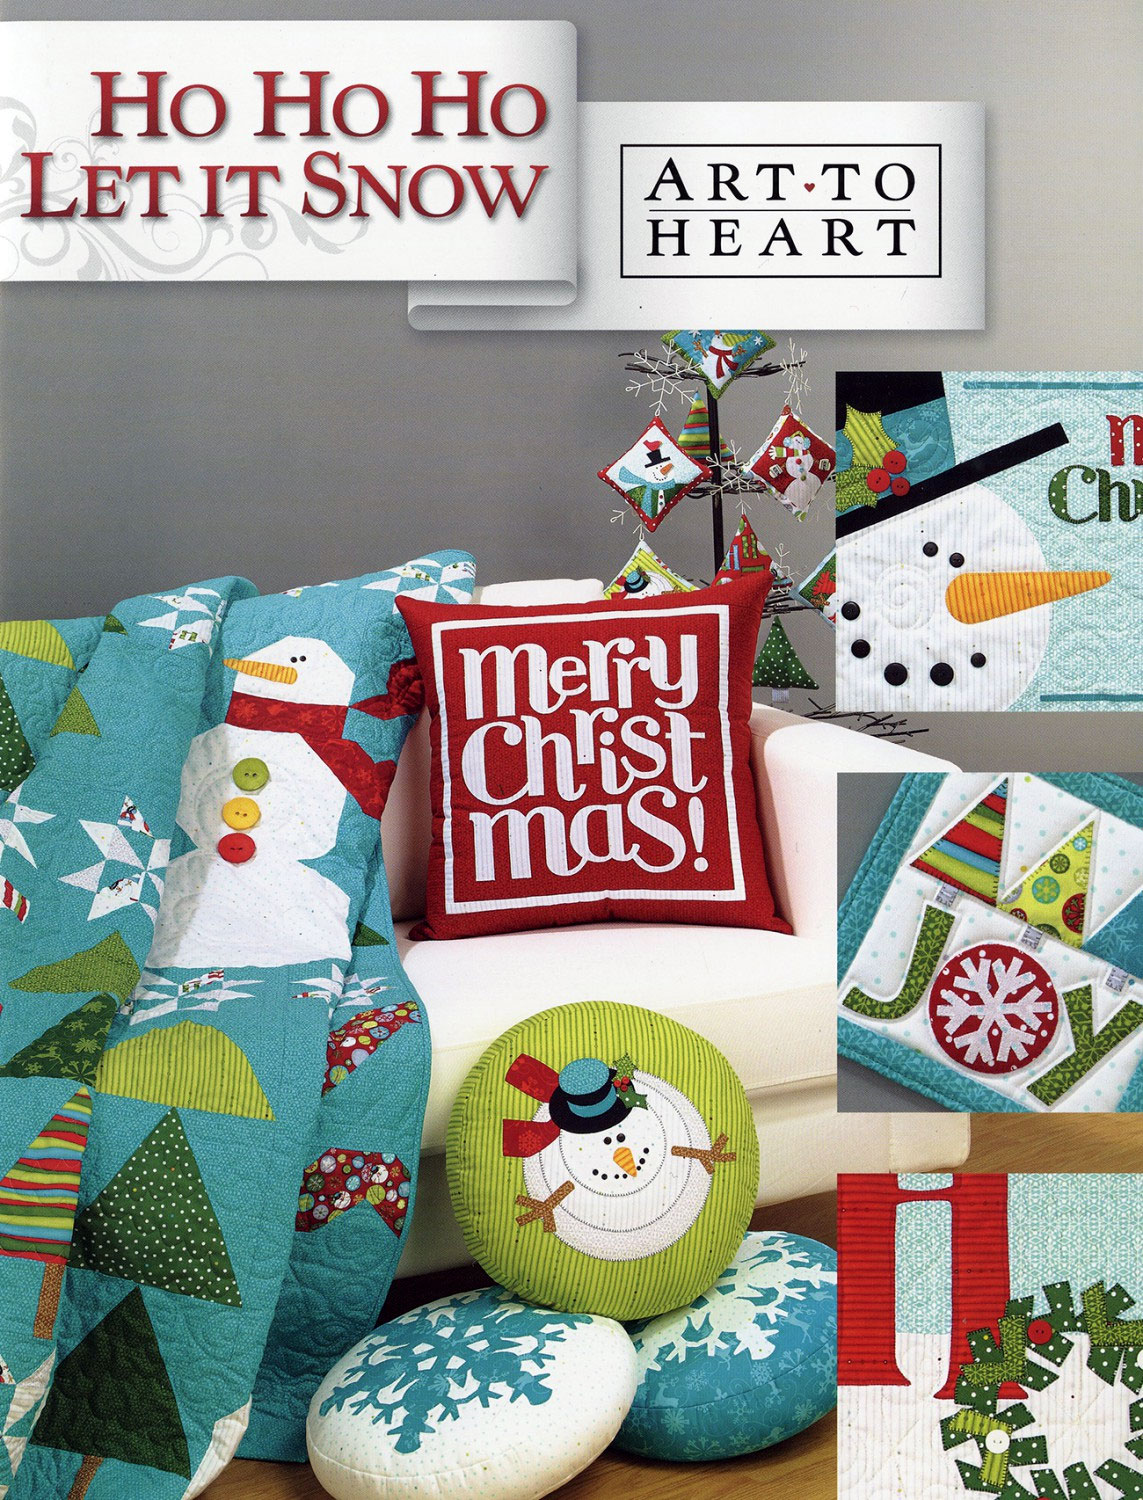 Ho-Ho-Ho-Let-It-Snow-sewing-book-Art-To-Heart-front